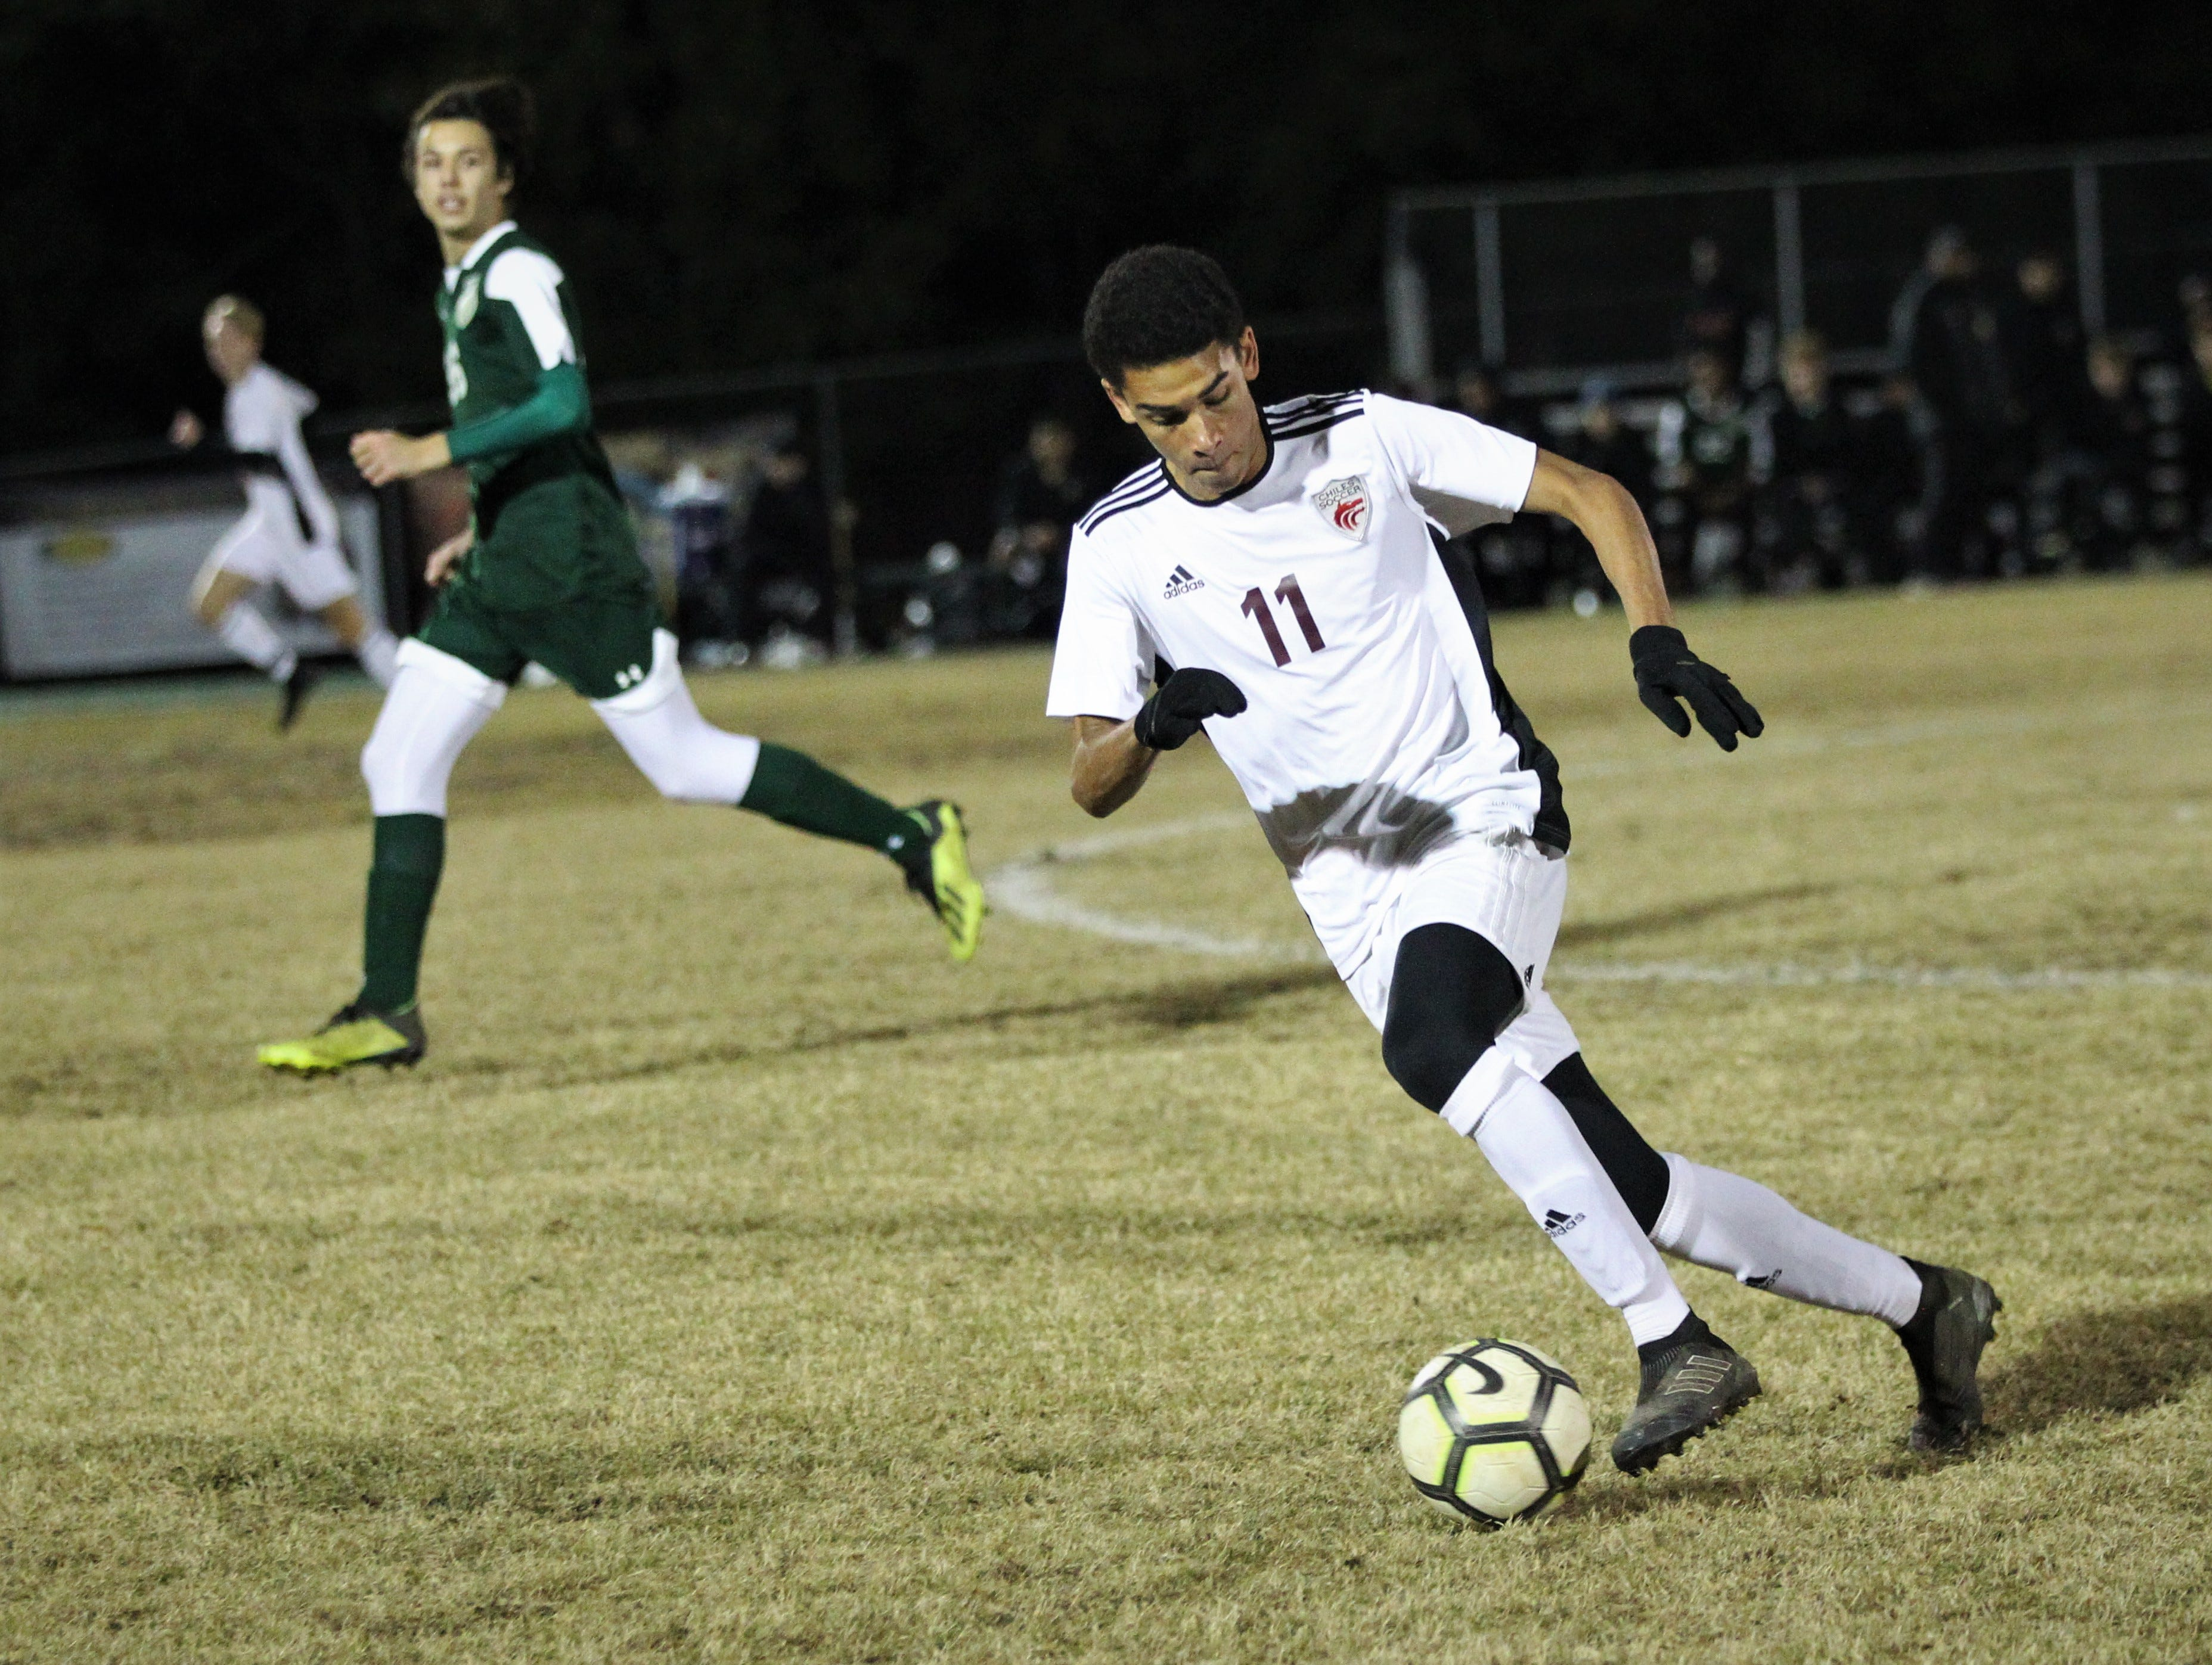 Chiles senior Will Johnson gains possession and races forward as Chiles' boys soccer team beat Lincoln 1-0 in a District 2-4A semifinal on Jan. 30, 2019.